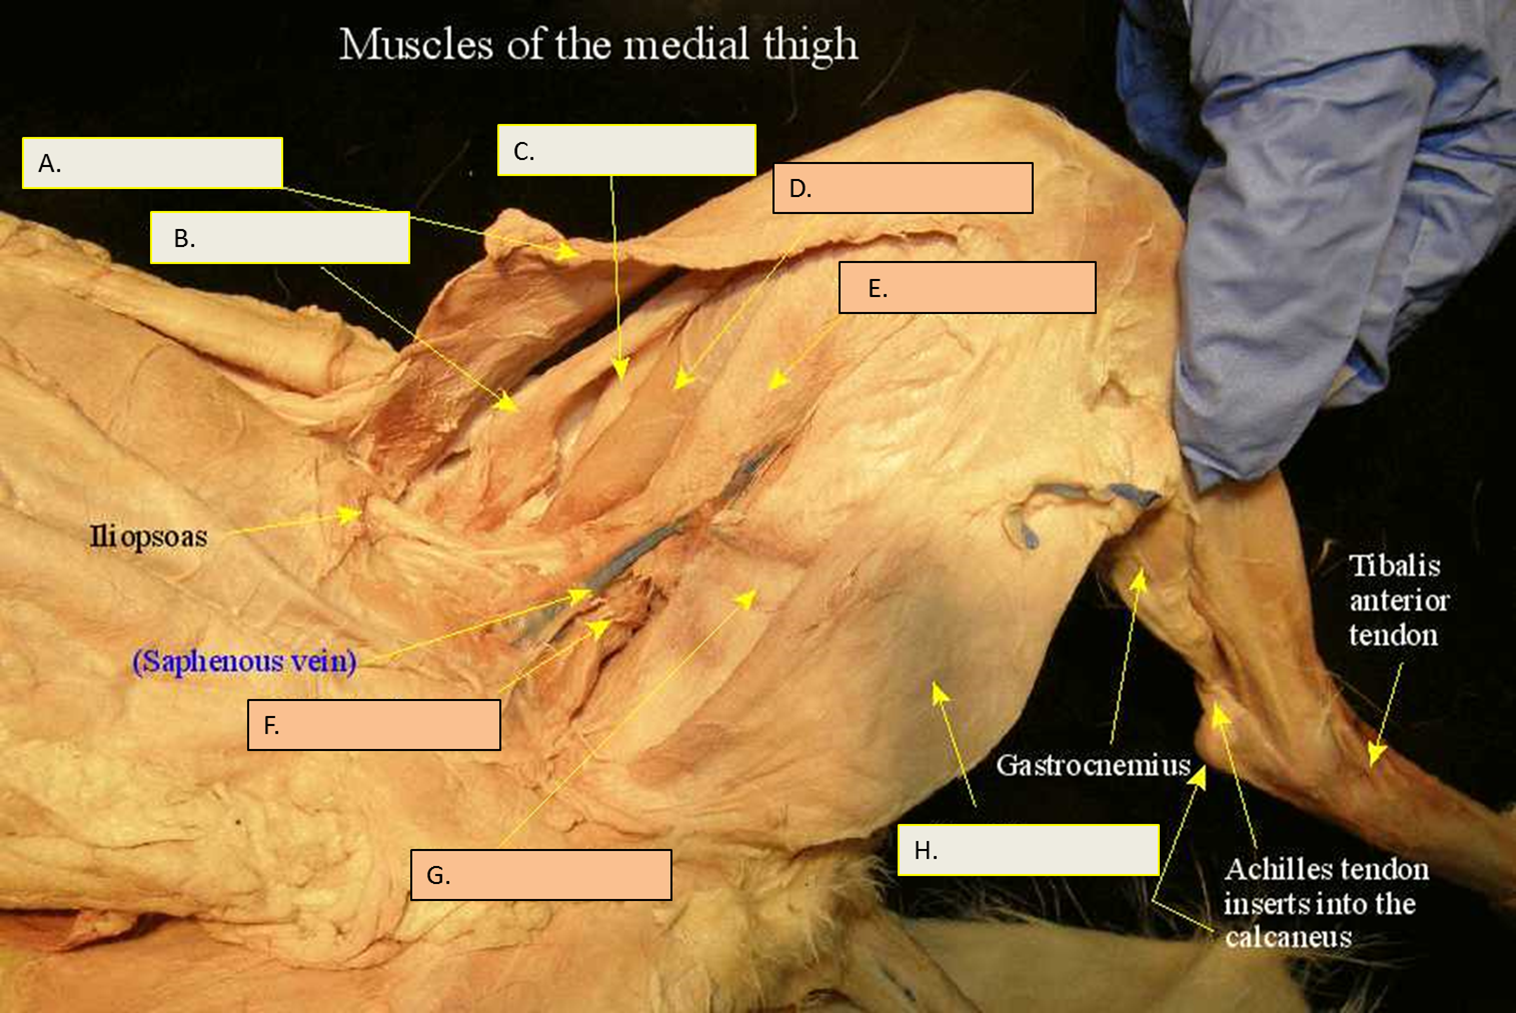 17) Identify the cat muscles labeled AH. Cat anatomy